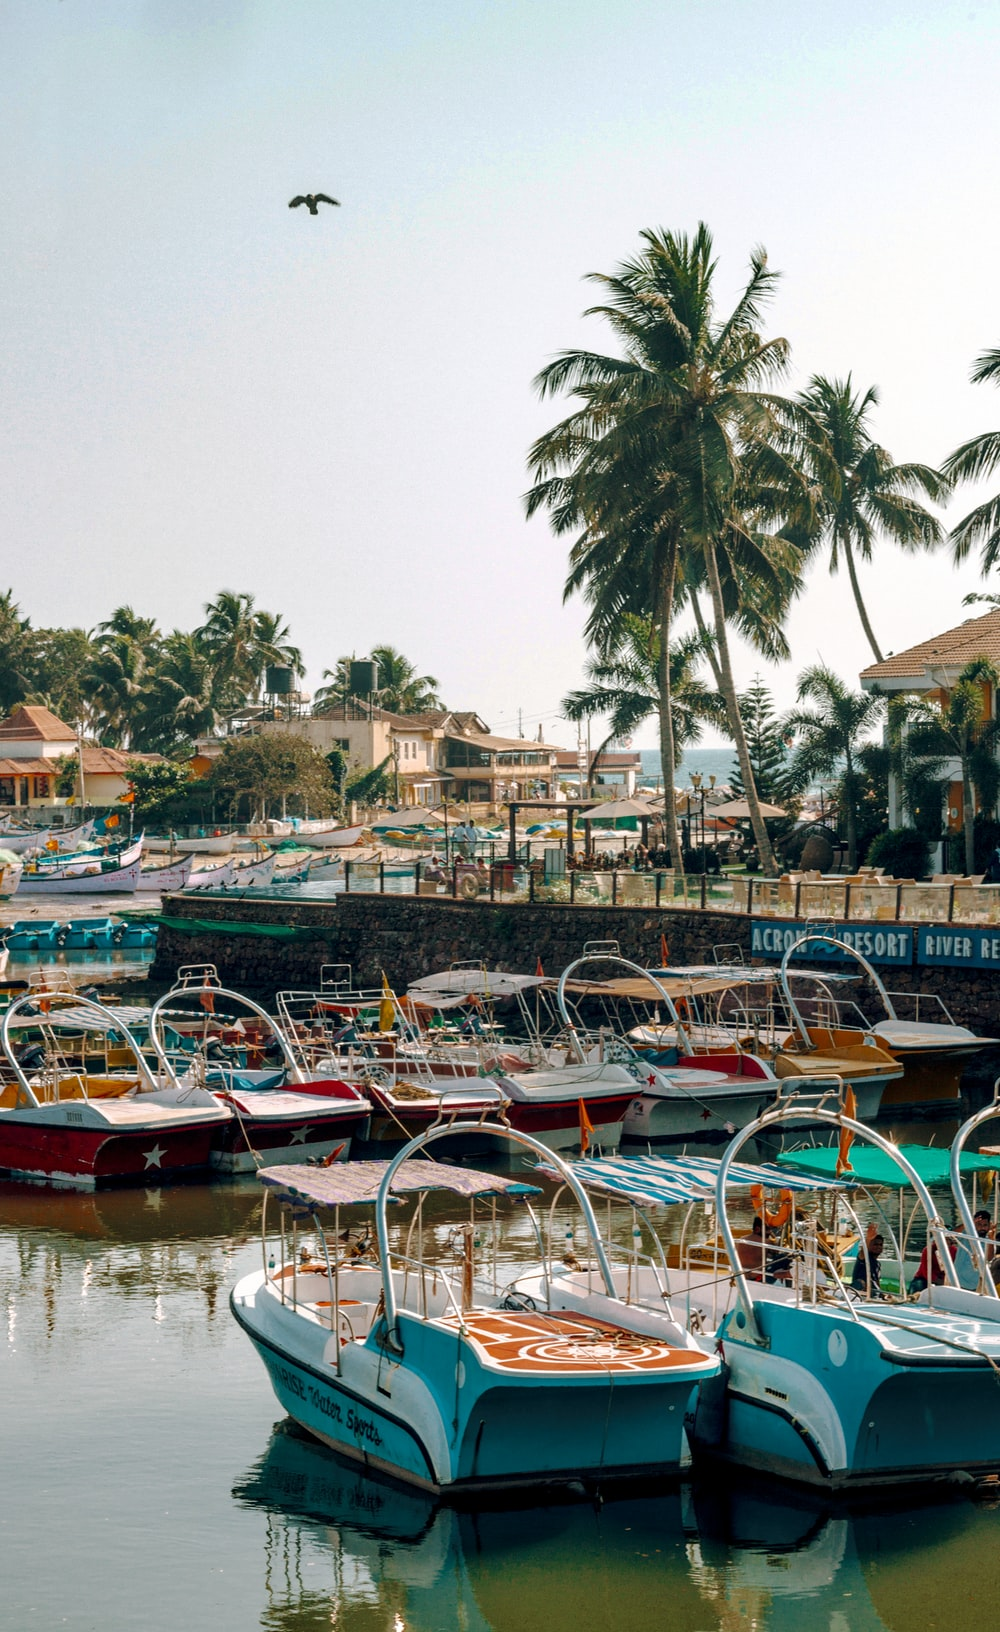 boats on dock near buildings during daytime